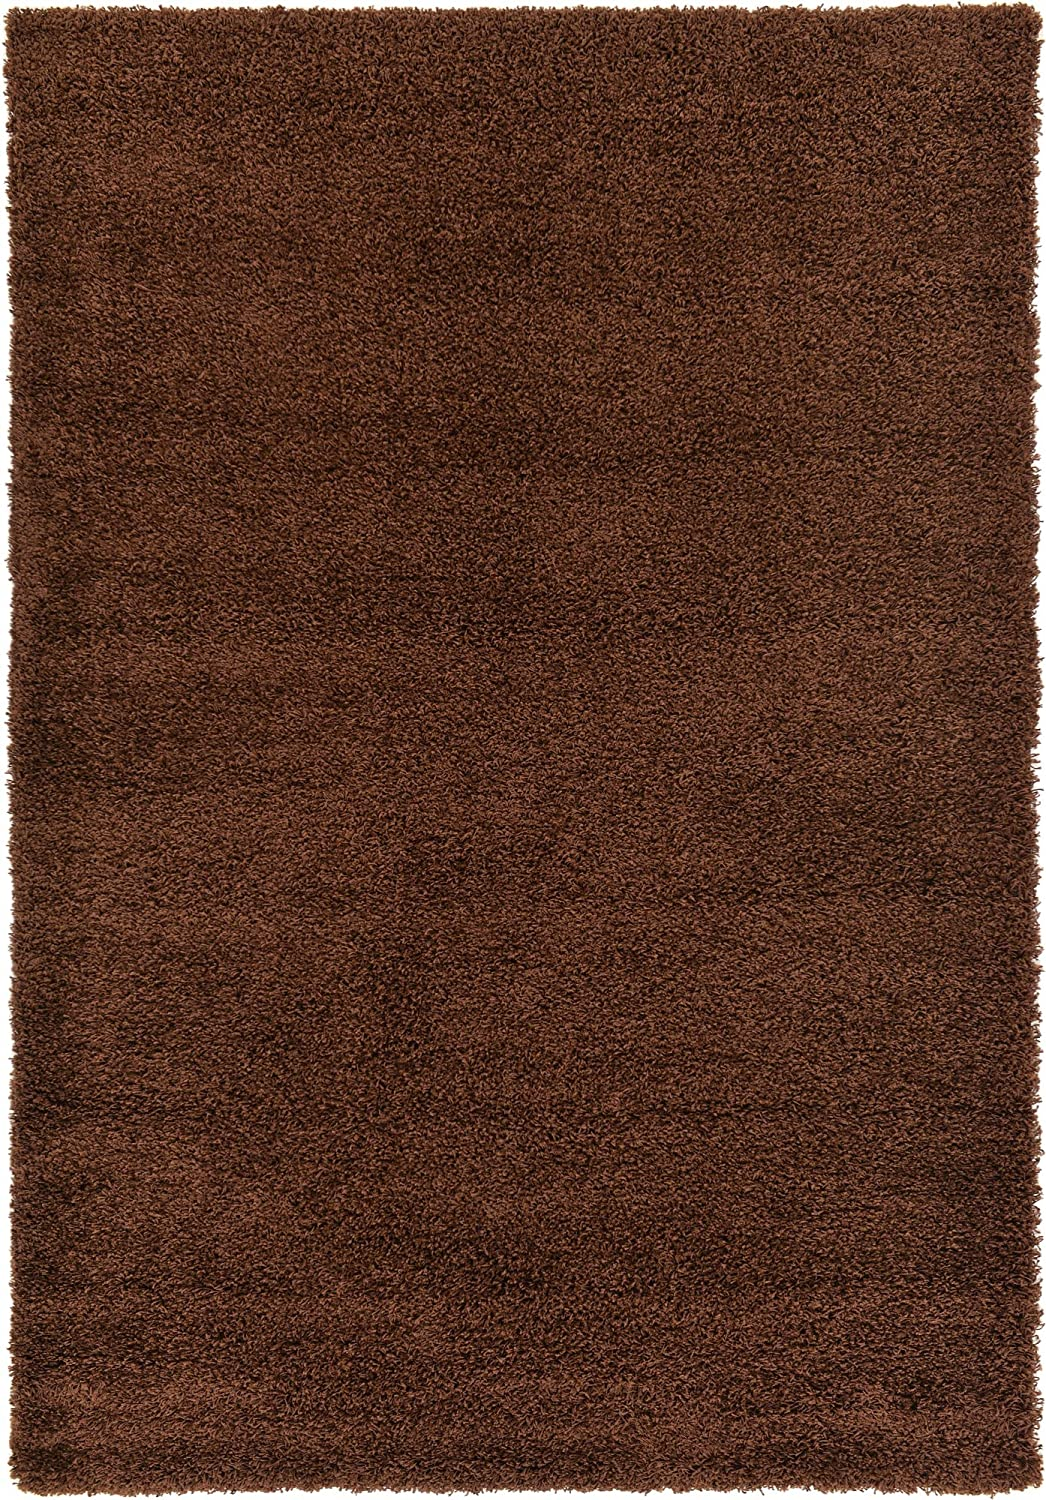 Unique Loom Solo Solid Shag Collection Modern Plush Chocolate Brown Area Rug (6' 0 x 9' 0)